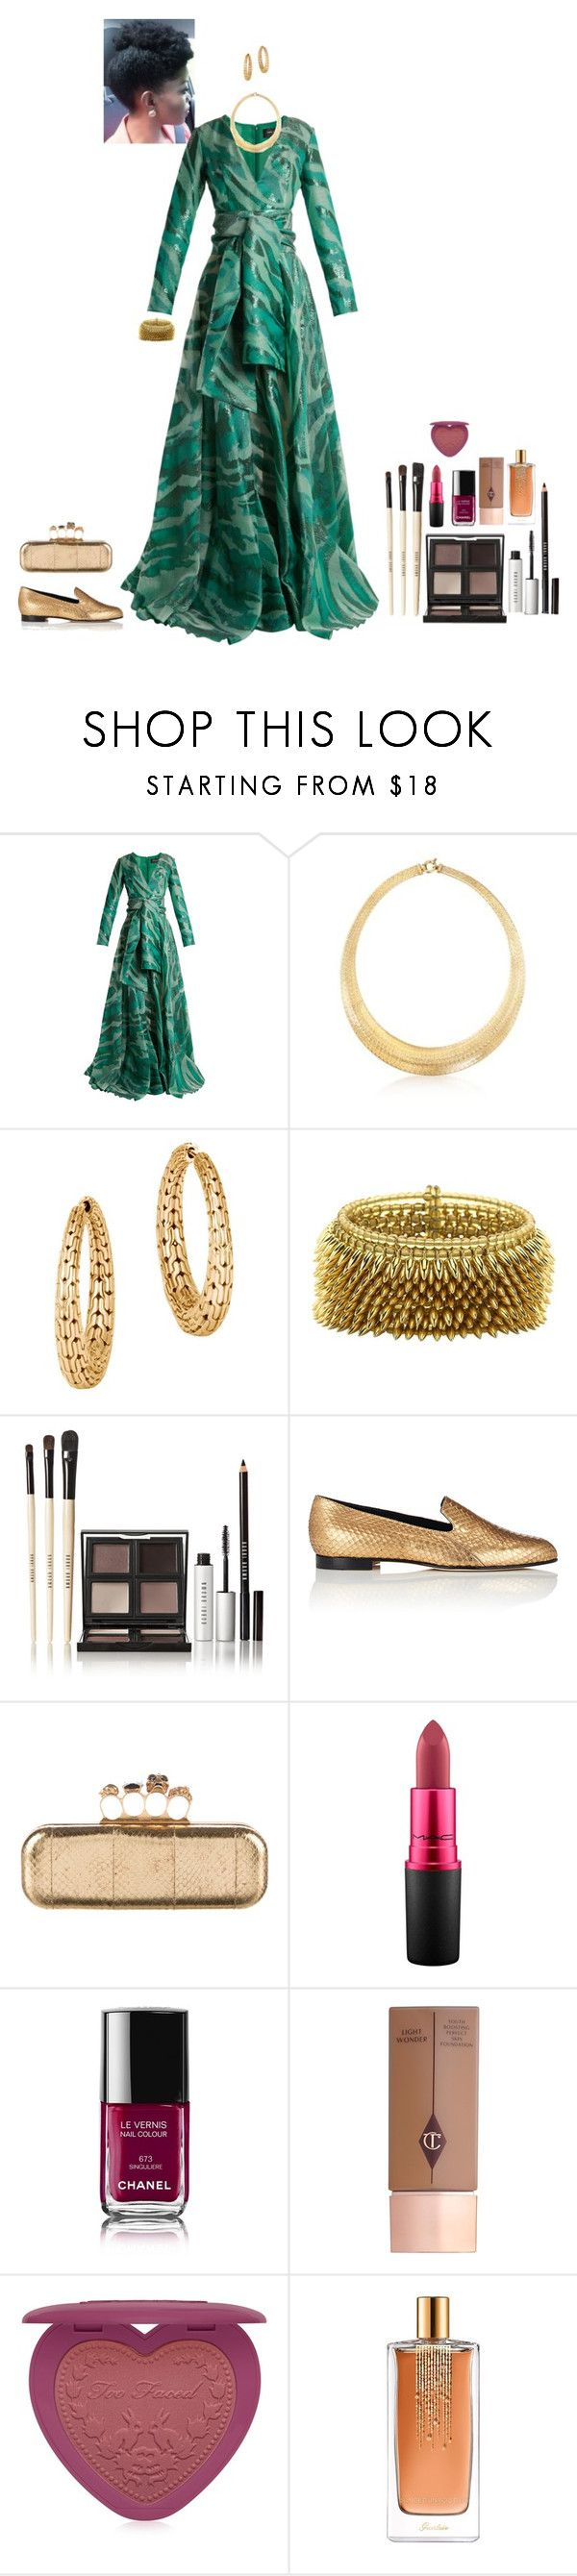 """""""green evening gown (Aoife)"""" by shulamithbond on Polyvore featuring Azzaro, Ross-Simons, John Hardy, Bobbi Brown Cosmetics, Manolo Blahnik, Alexander McQueen, MAC Cosmetics, Chanel, Charlotte Tilbury and Too Faced Cosmetics"""